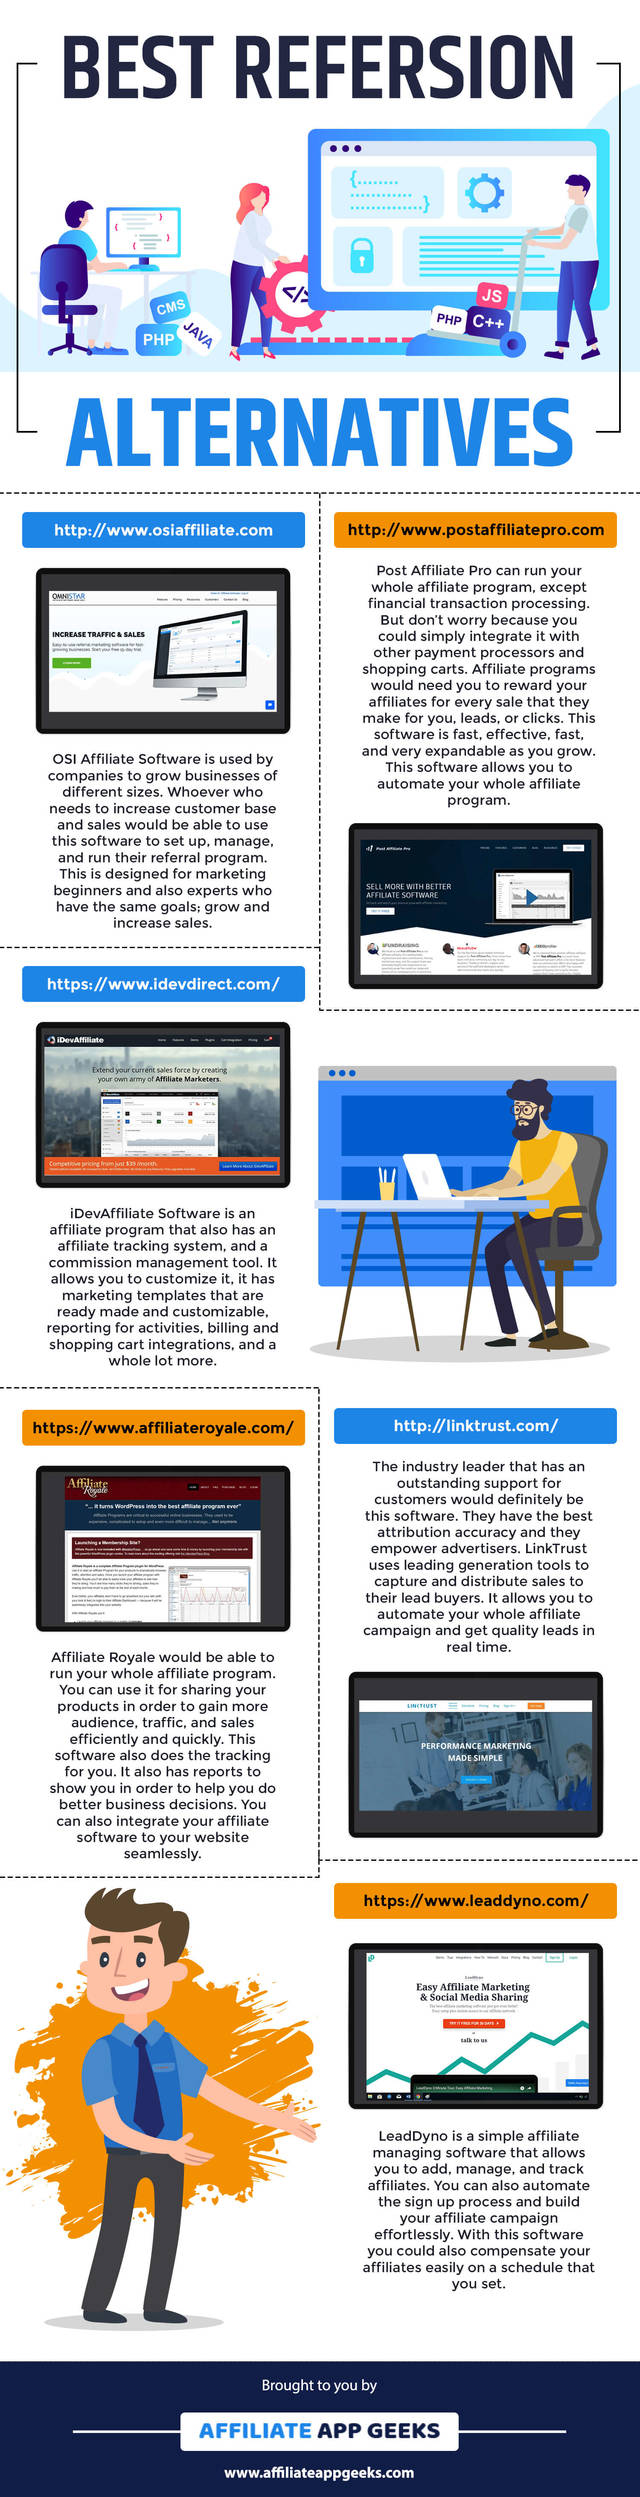 Best refersion alternatives infographic